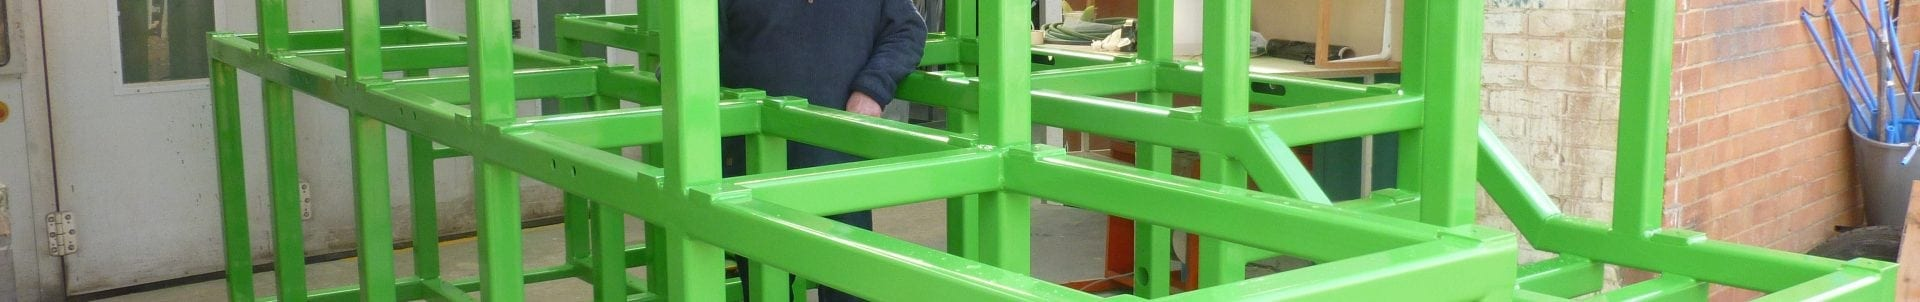 painted component in green